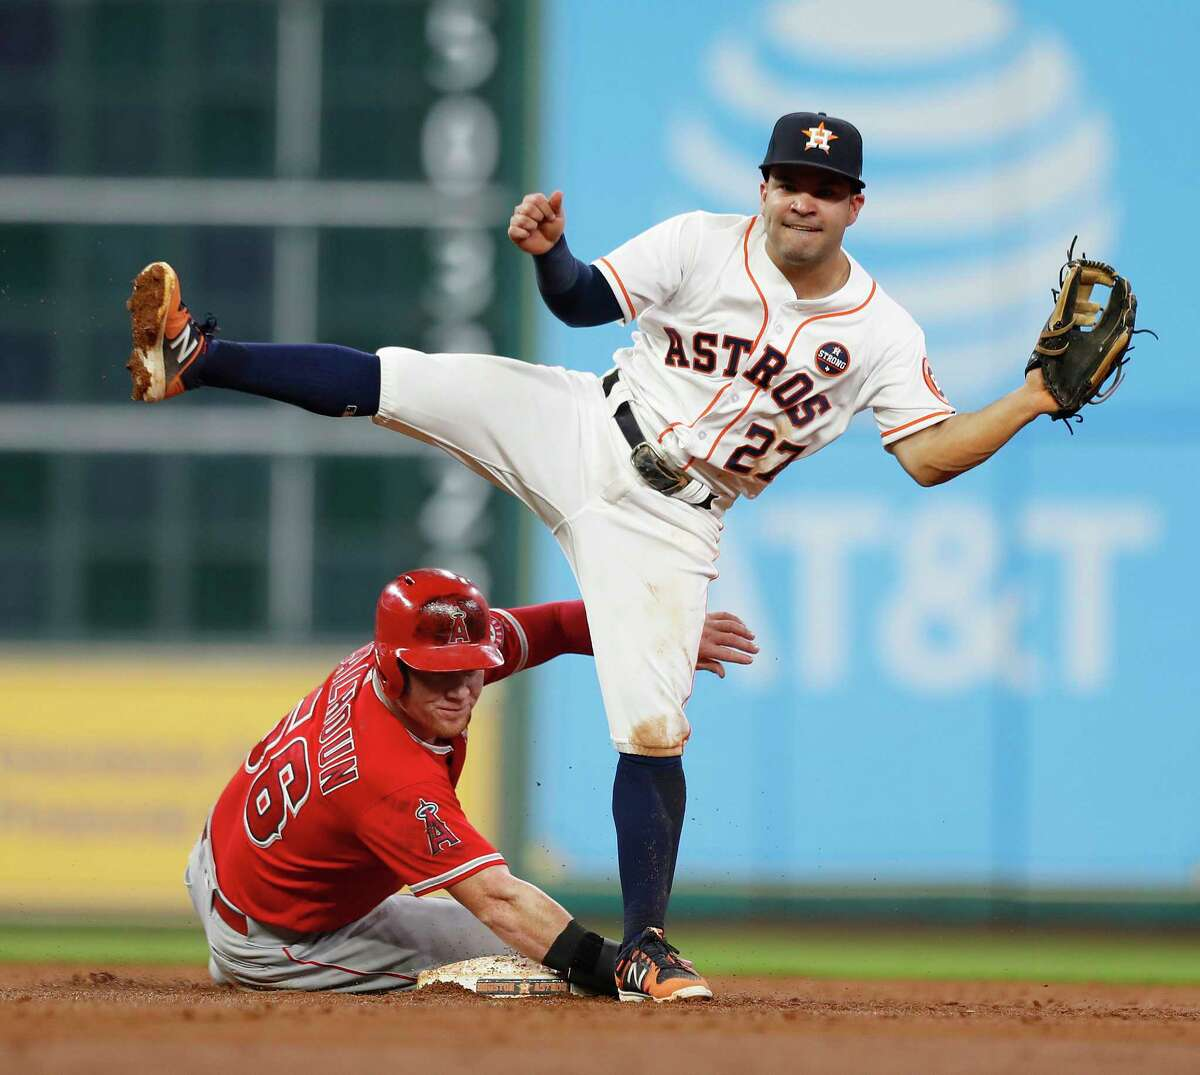 Jose Altuve's prolific hitting gets most of the attention, but his fielding and baserunning skills make him an all-around dynamic player.